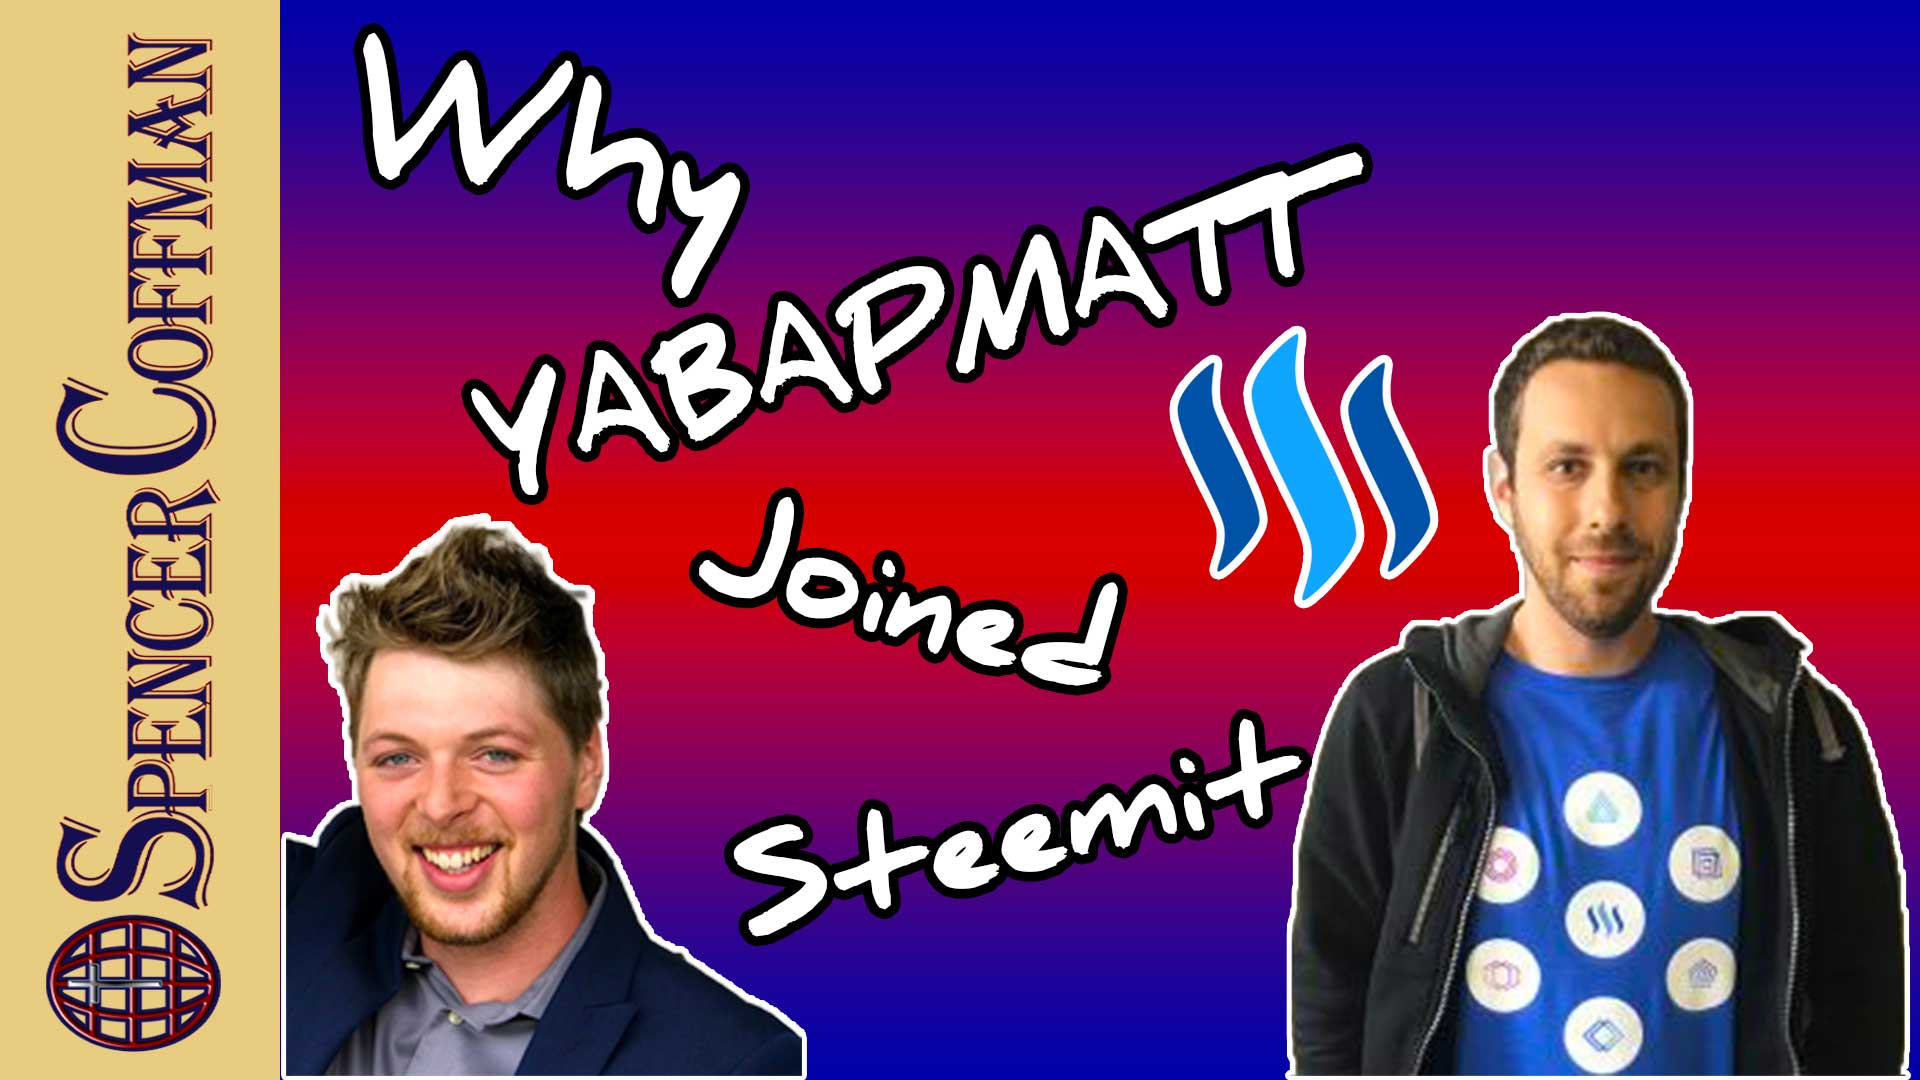 Why Yabapmatt Joined Steemit And You Should Too